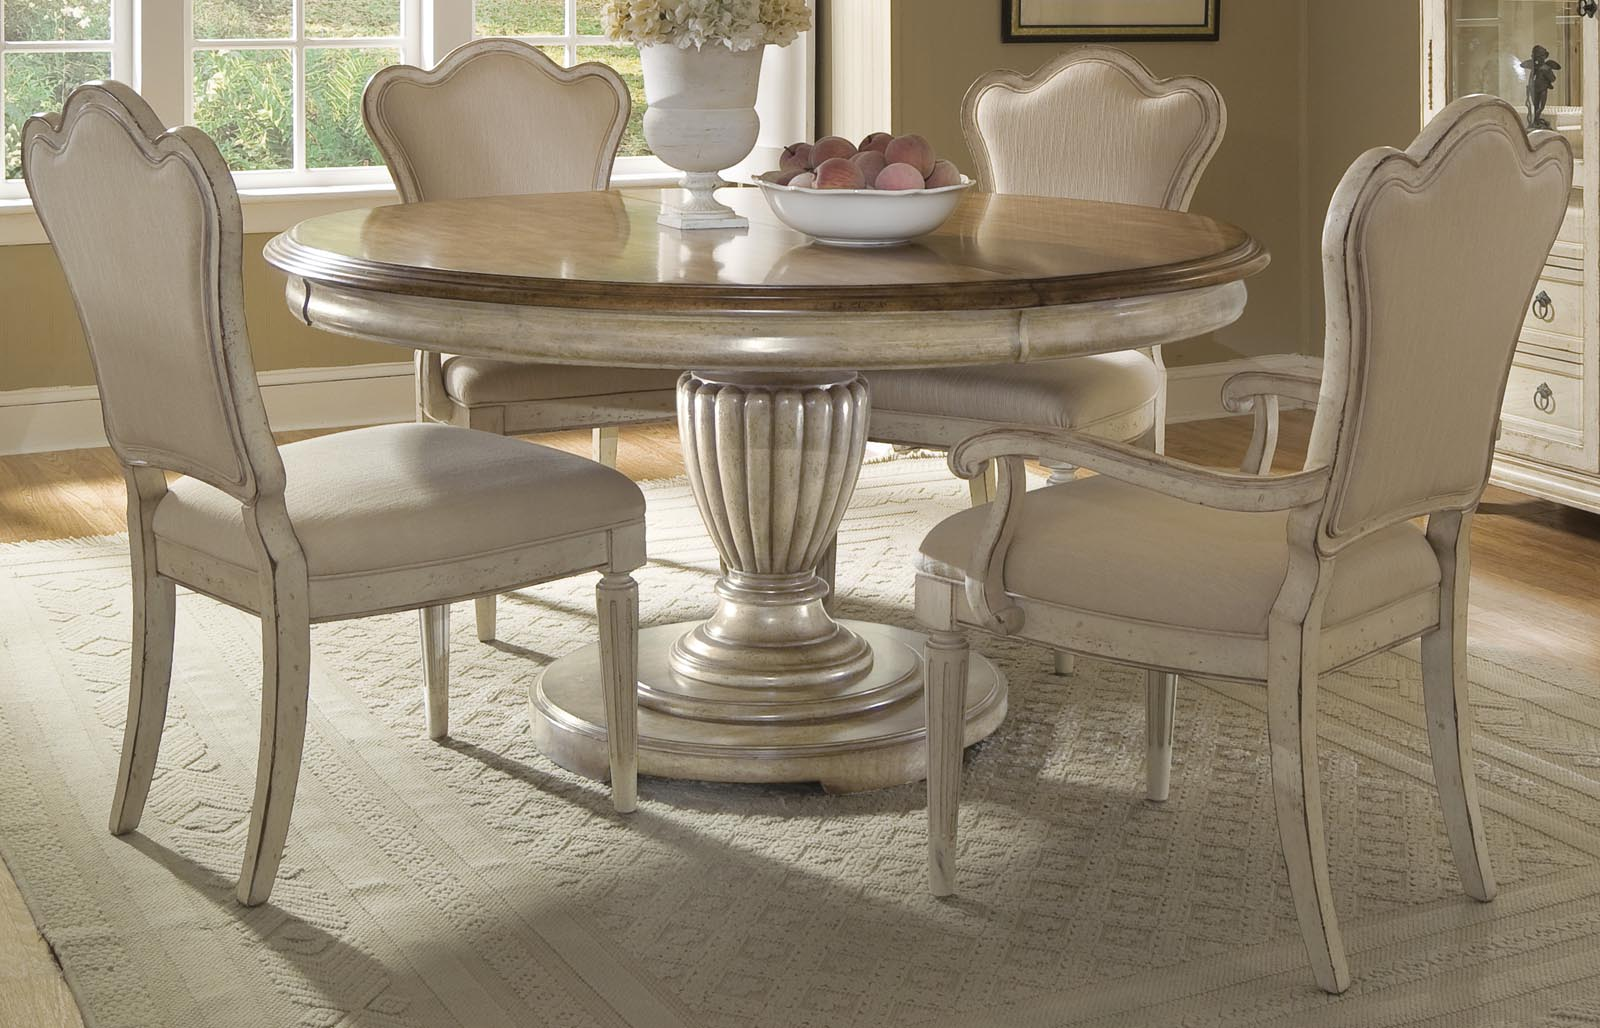 ART Provenance 5 Pc Round Dining Set By Dining Rooms Outlet